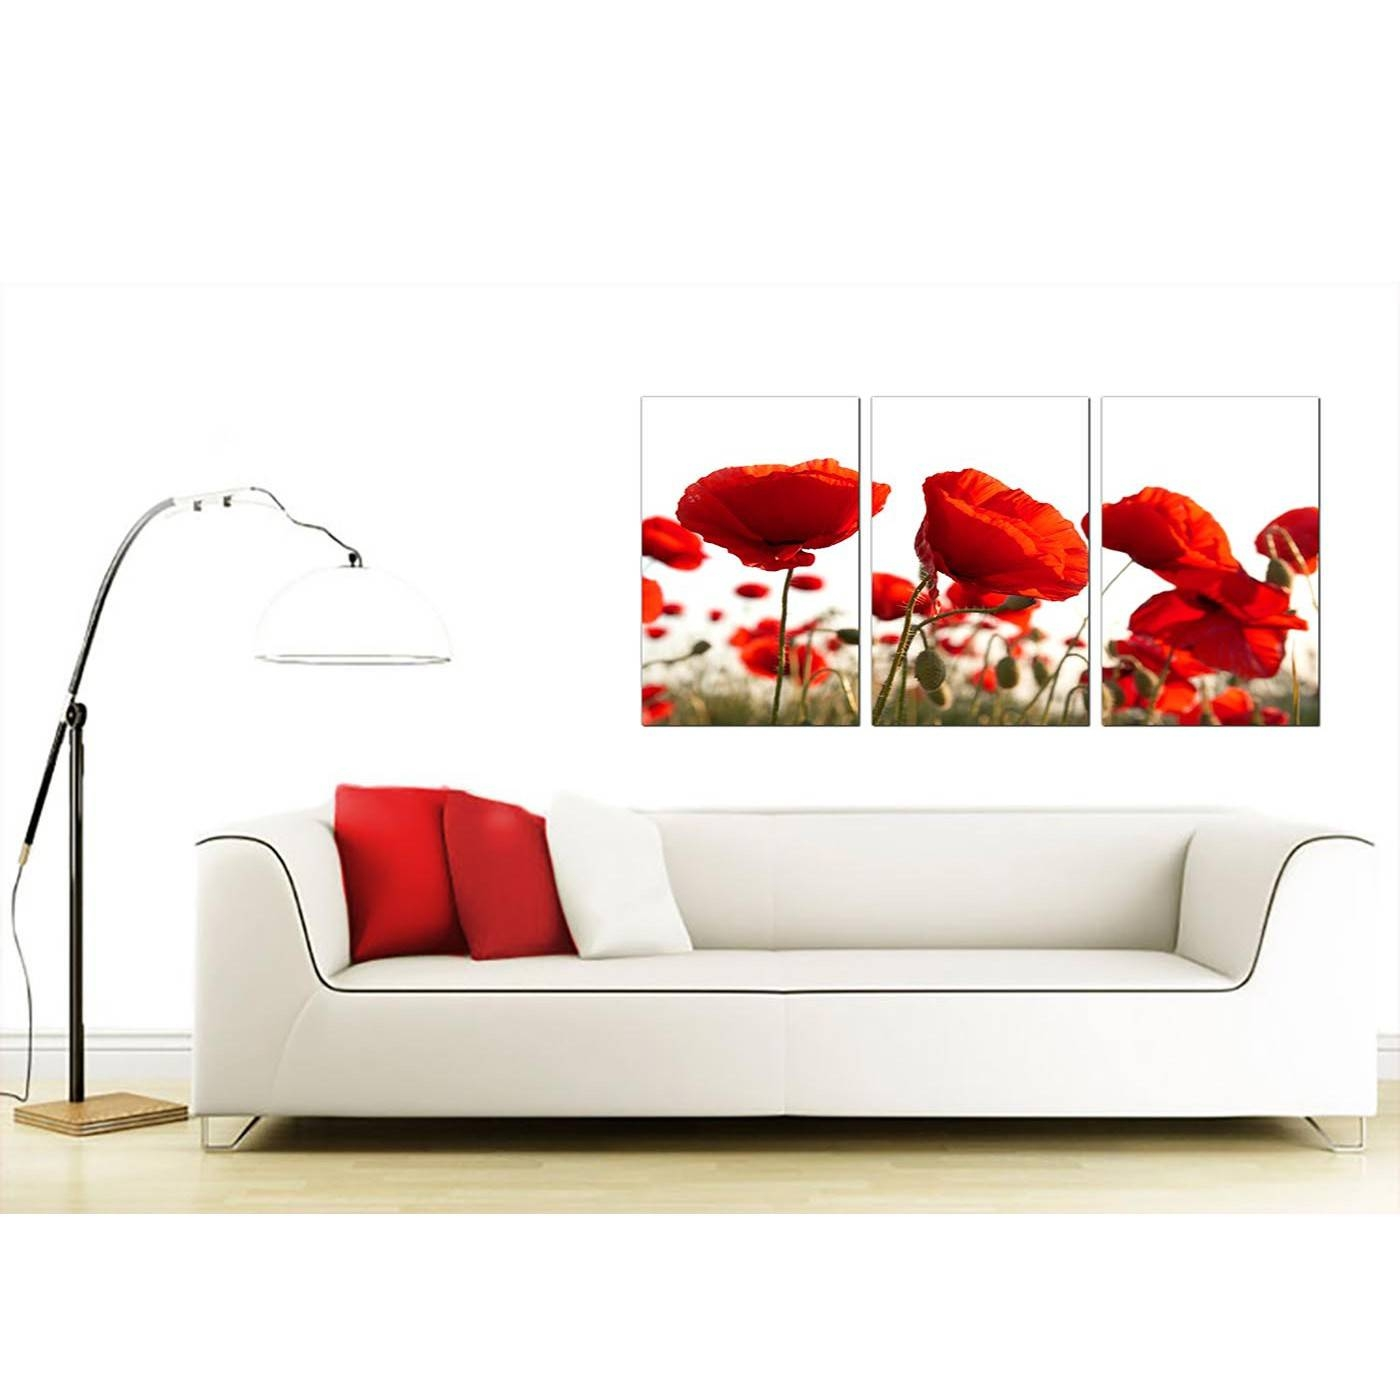 Poppy Canvas Wall Art Set Of 3 For Your Living Room Pertaining To Most Up To Date Wall Art Sets For Living Room (View 13 of 20)